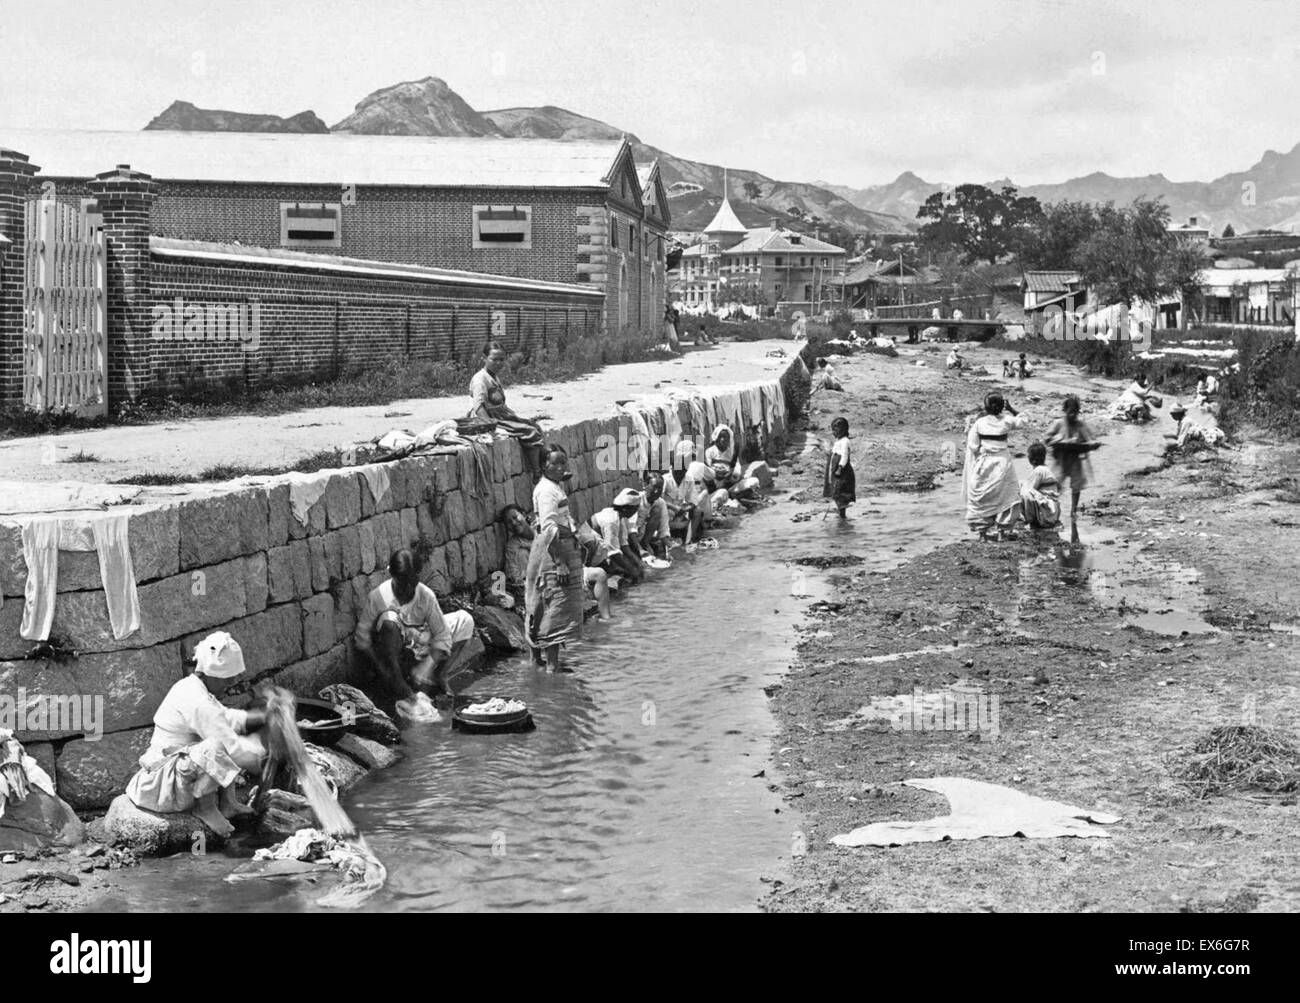 African American Women are shown washing laundry in the stream running through a side street, California. 1904 - Stock Image